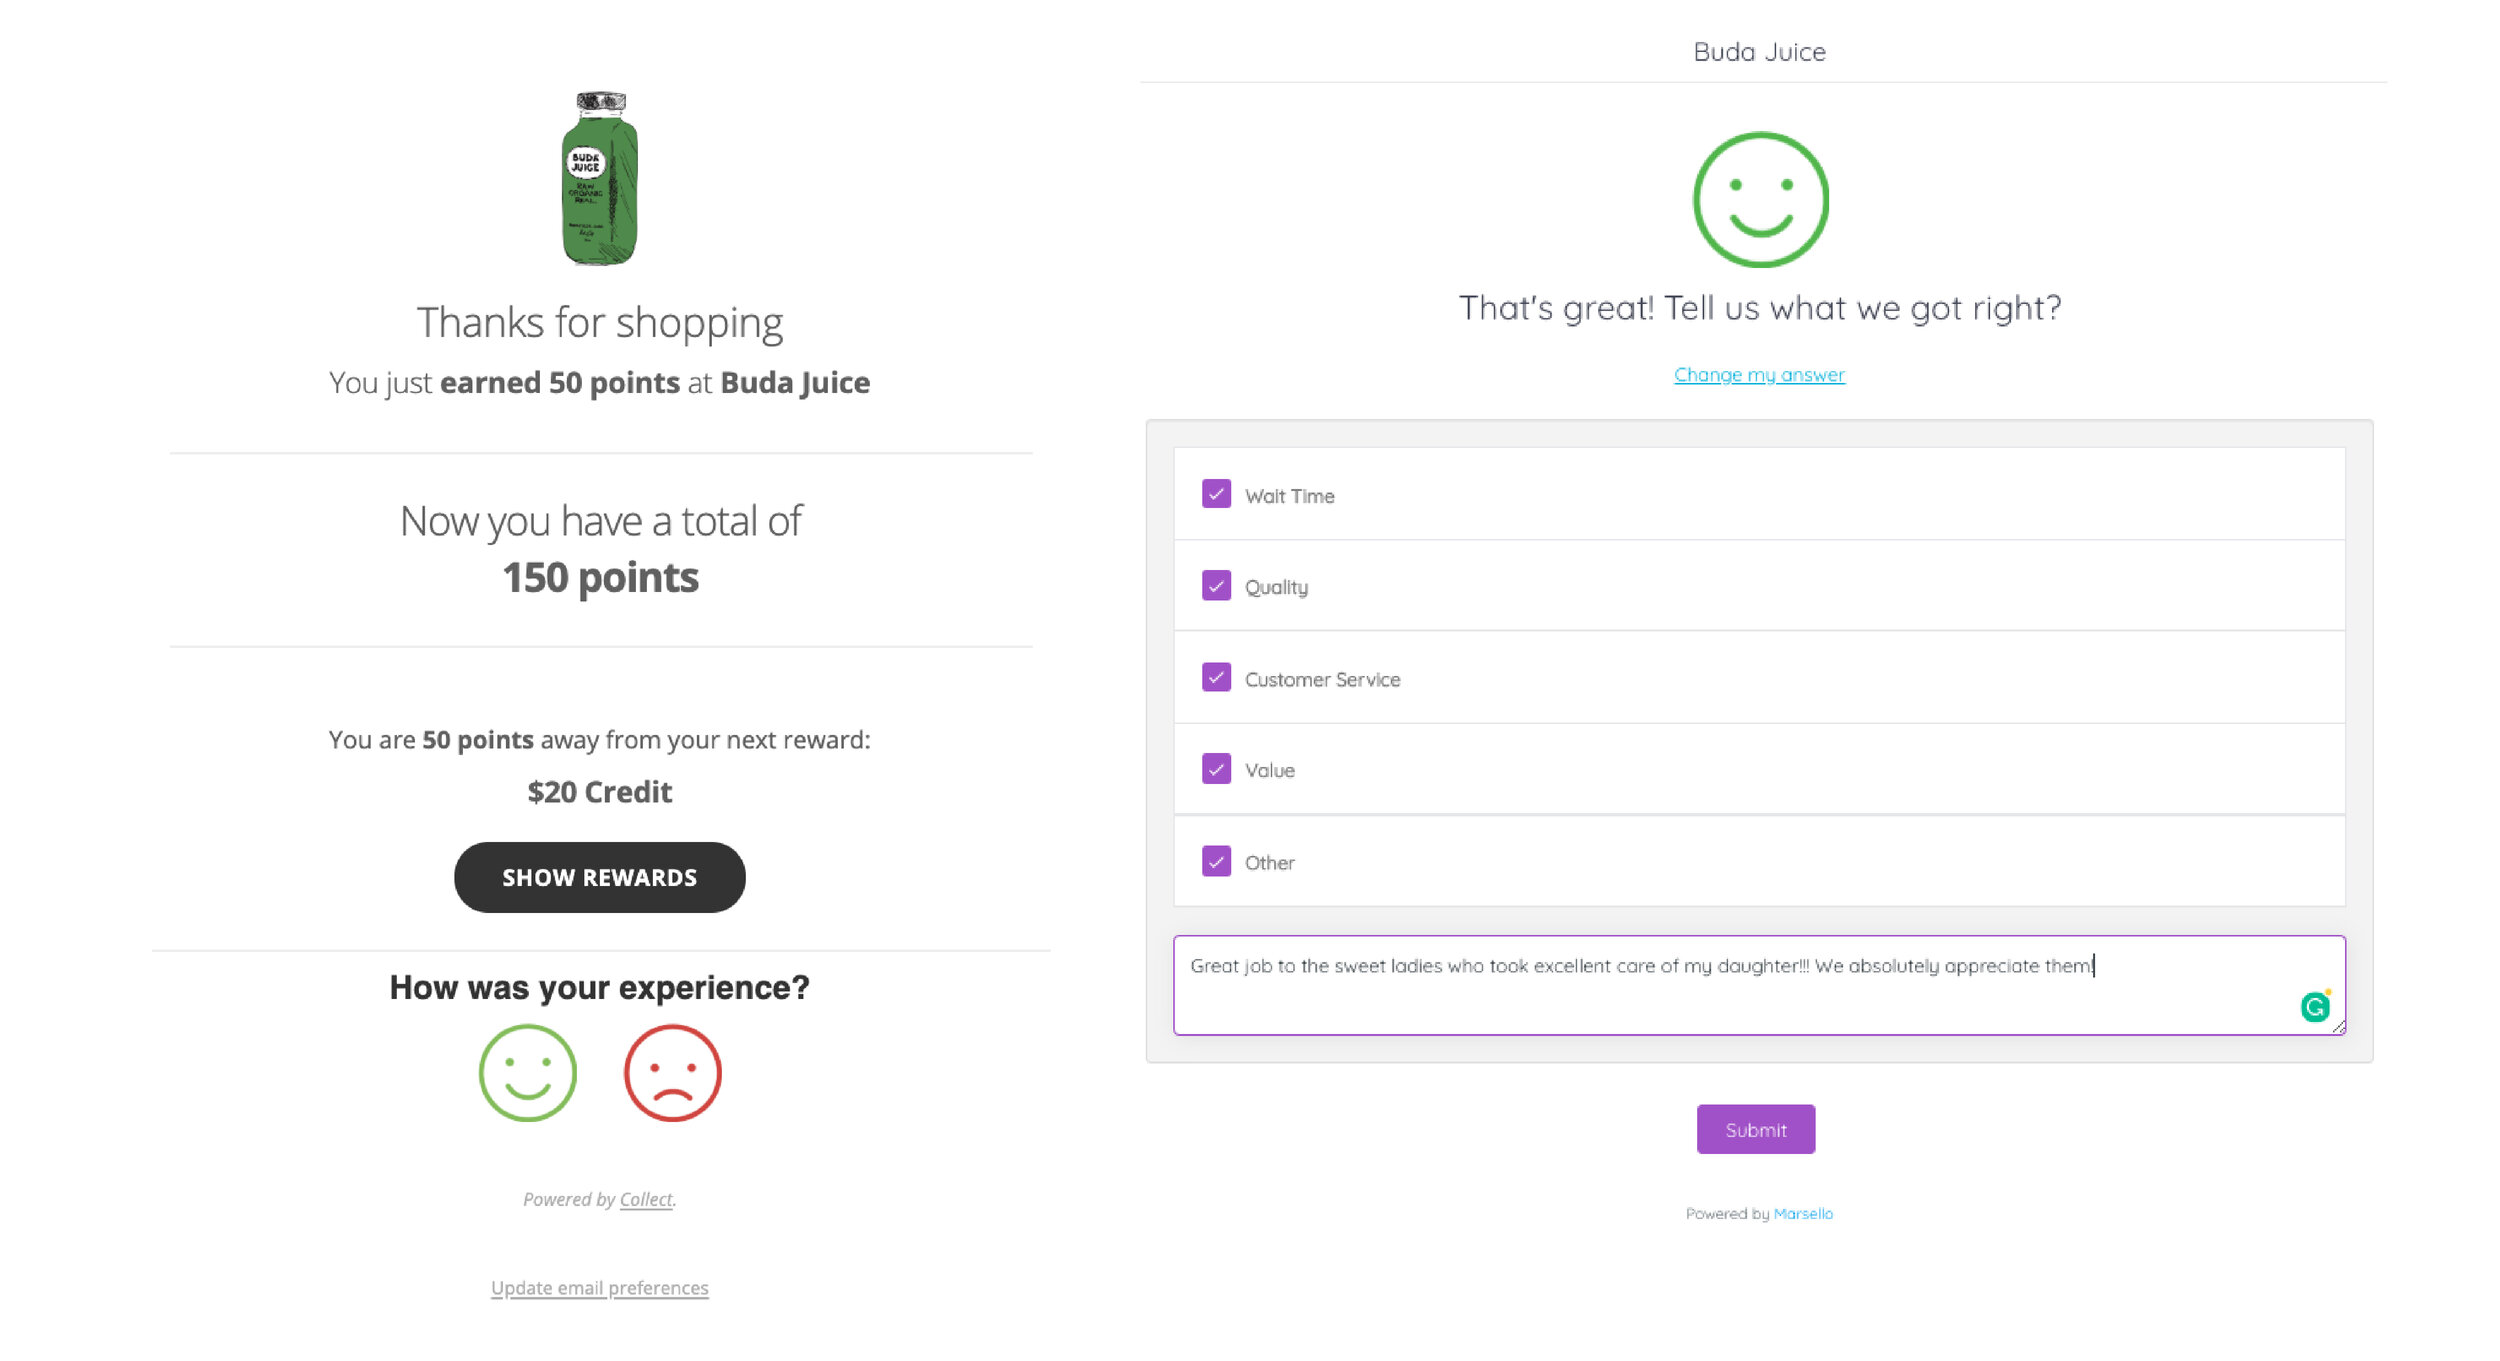 A BudaJuice email which contacts customer feedback prompts